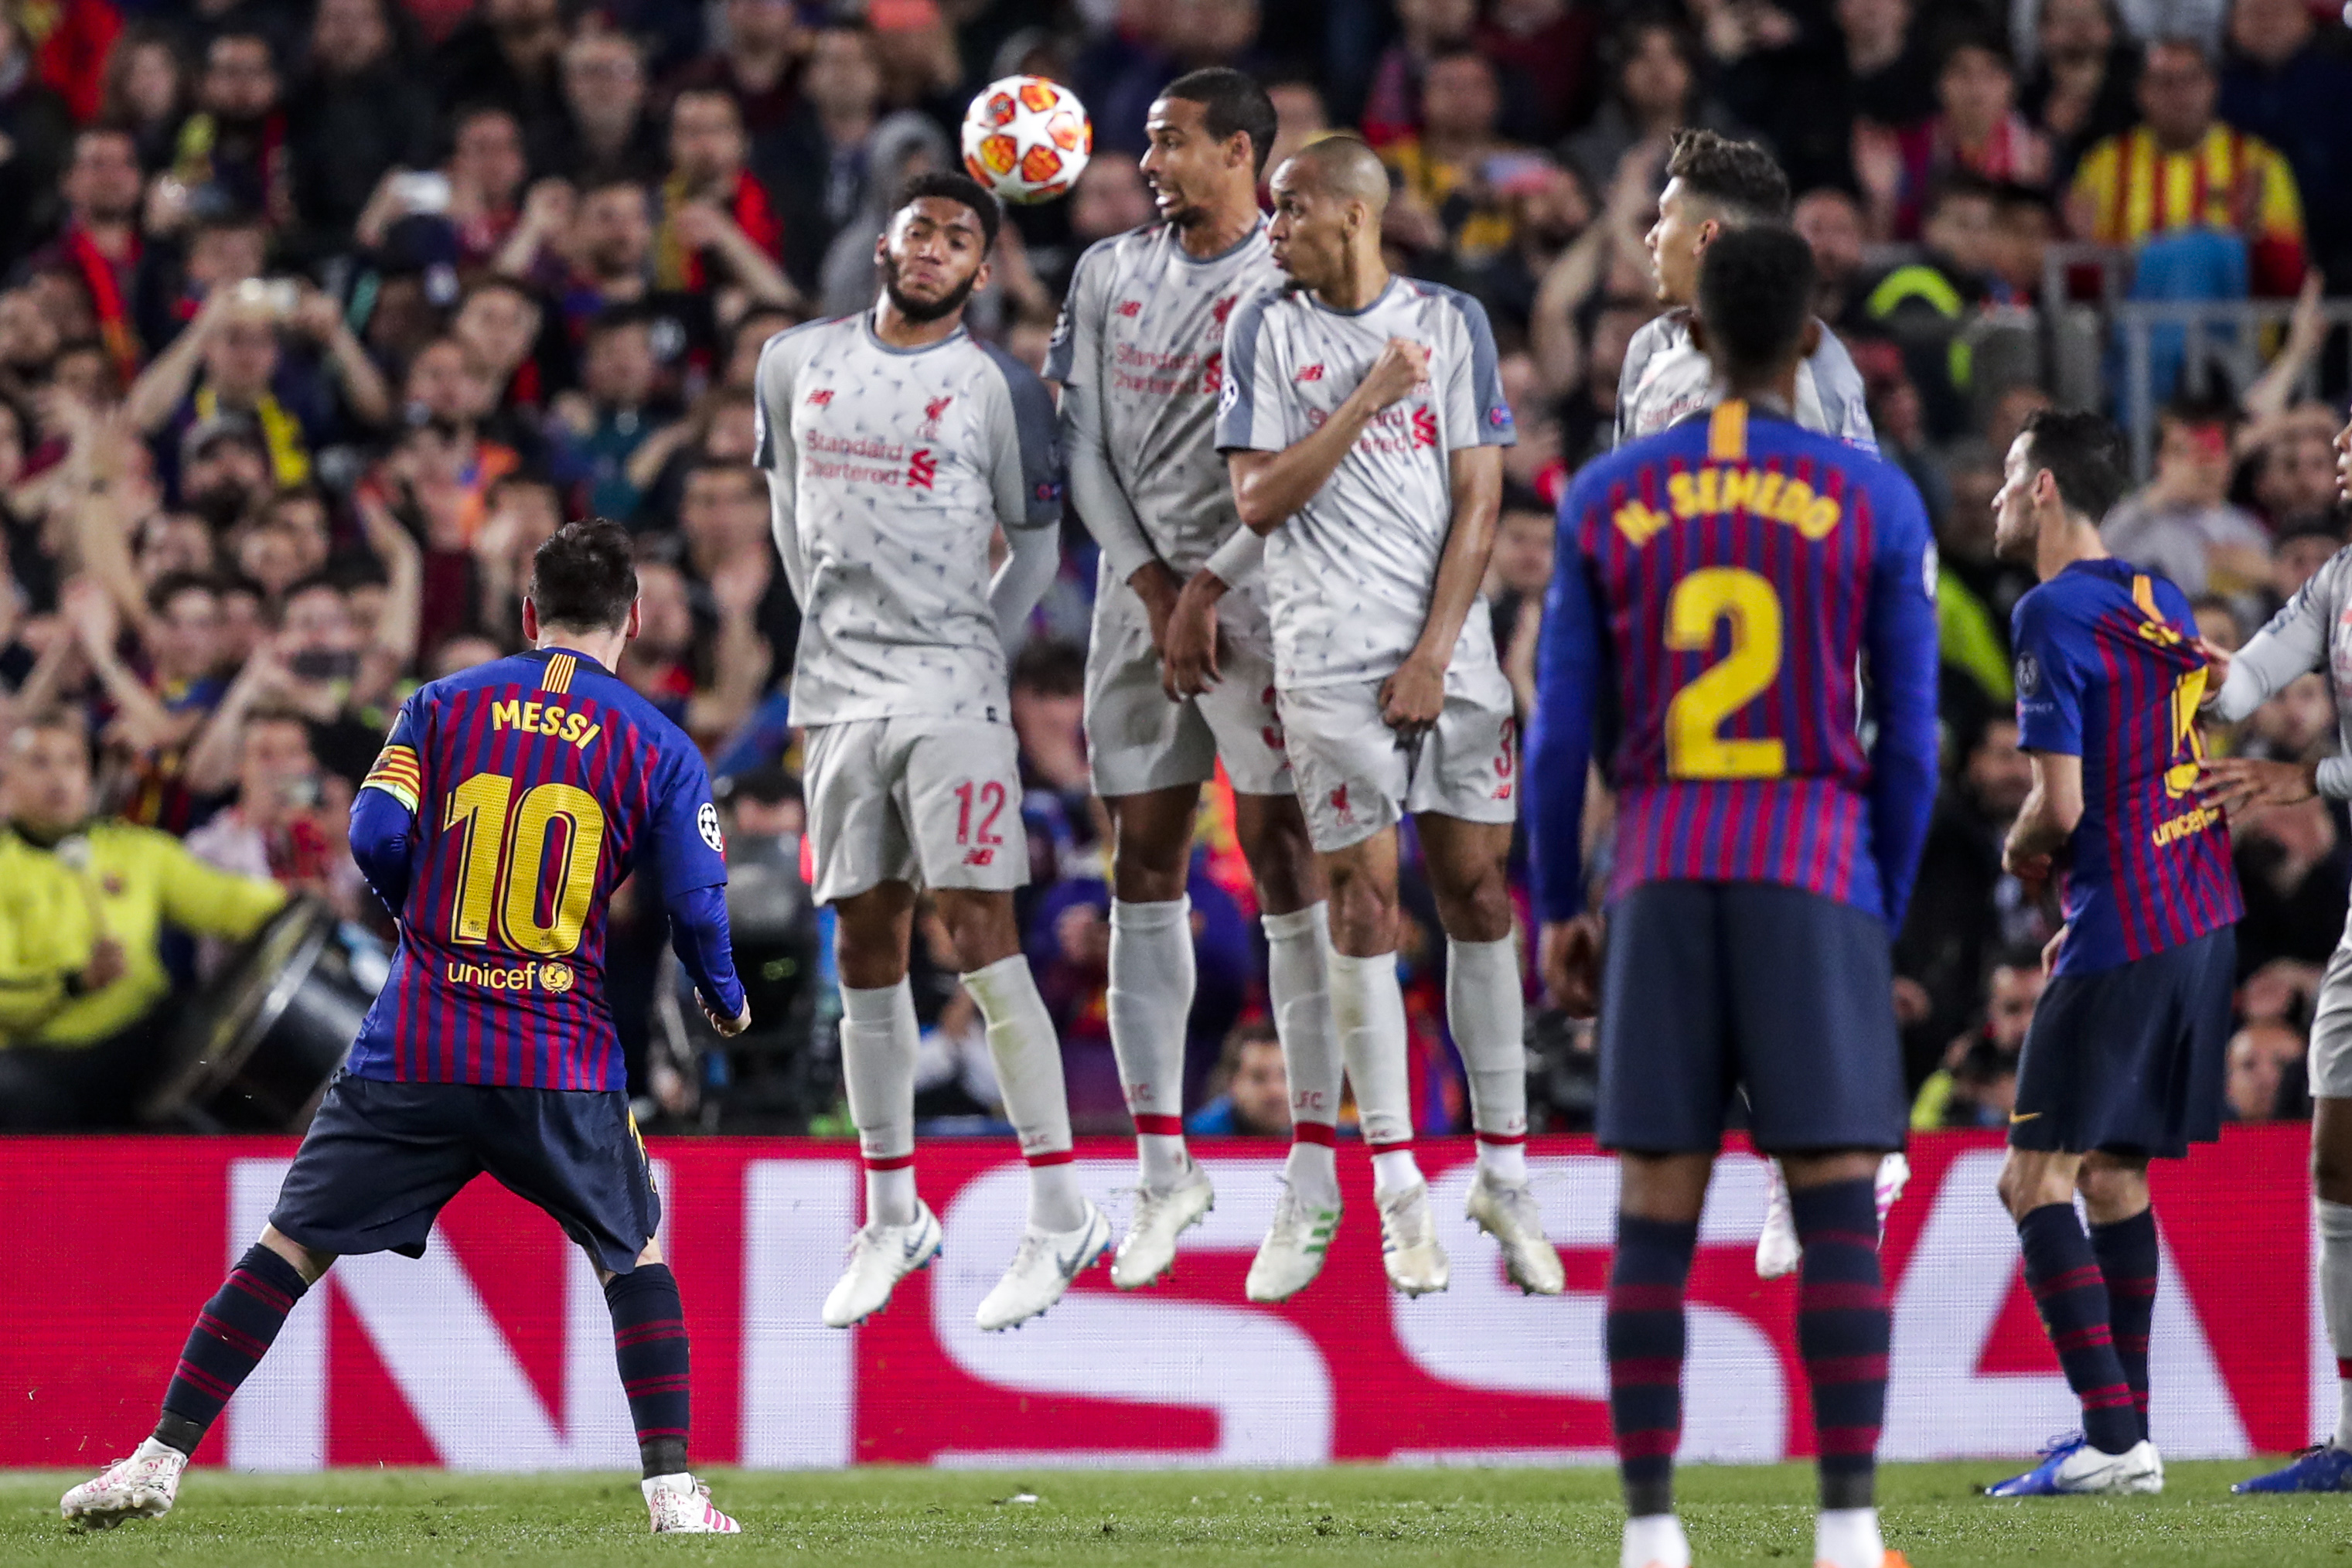 Lionel Messi's stunning free-kick goes over the Liverpool wall en route to the net to put Barca three up